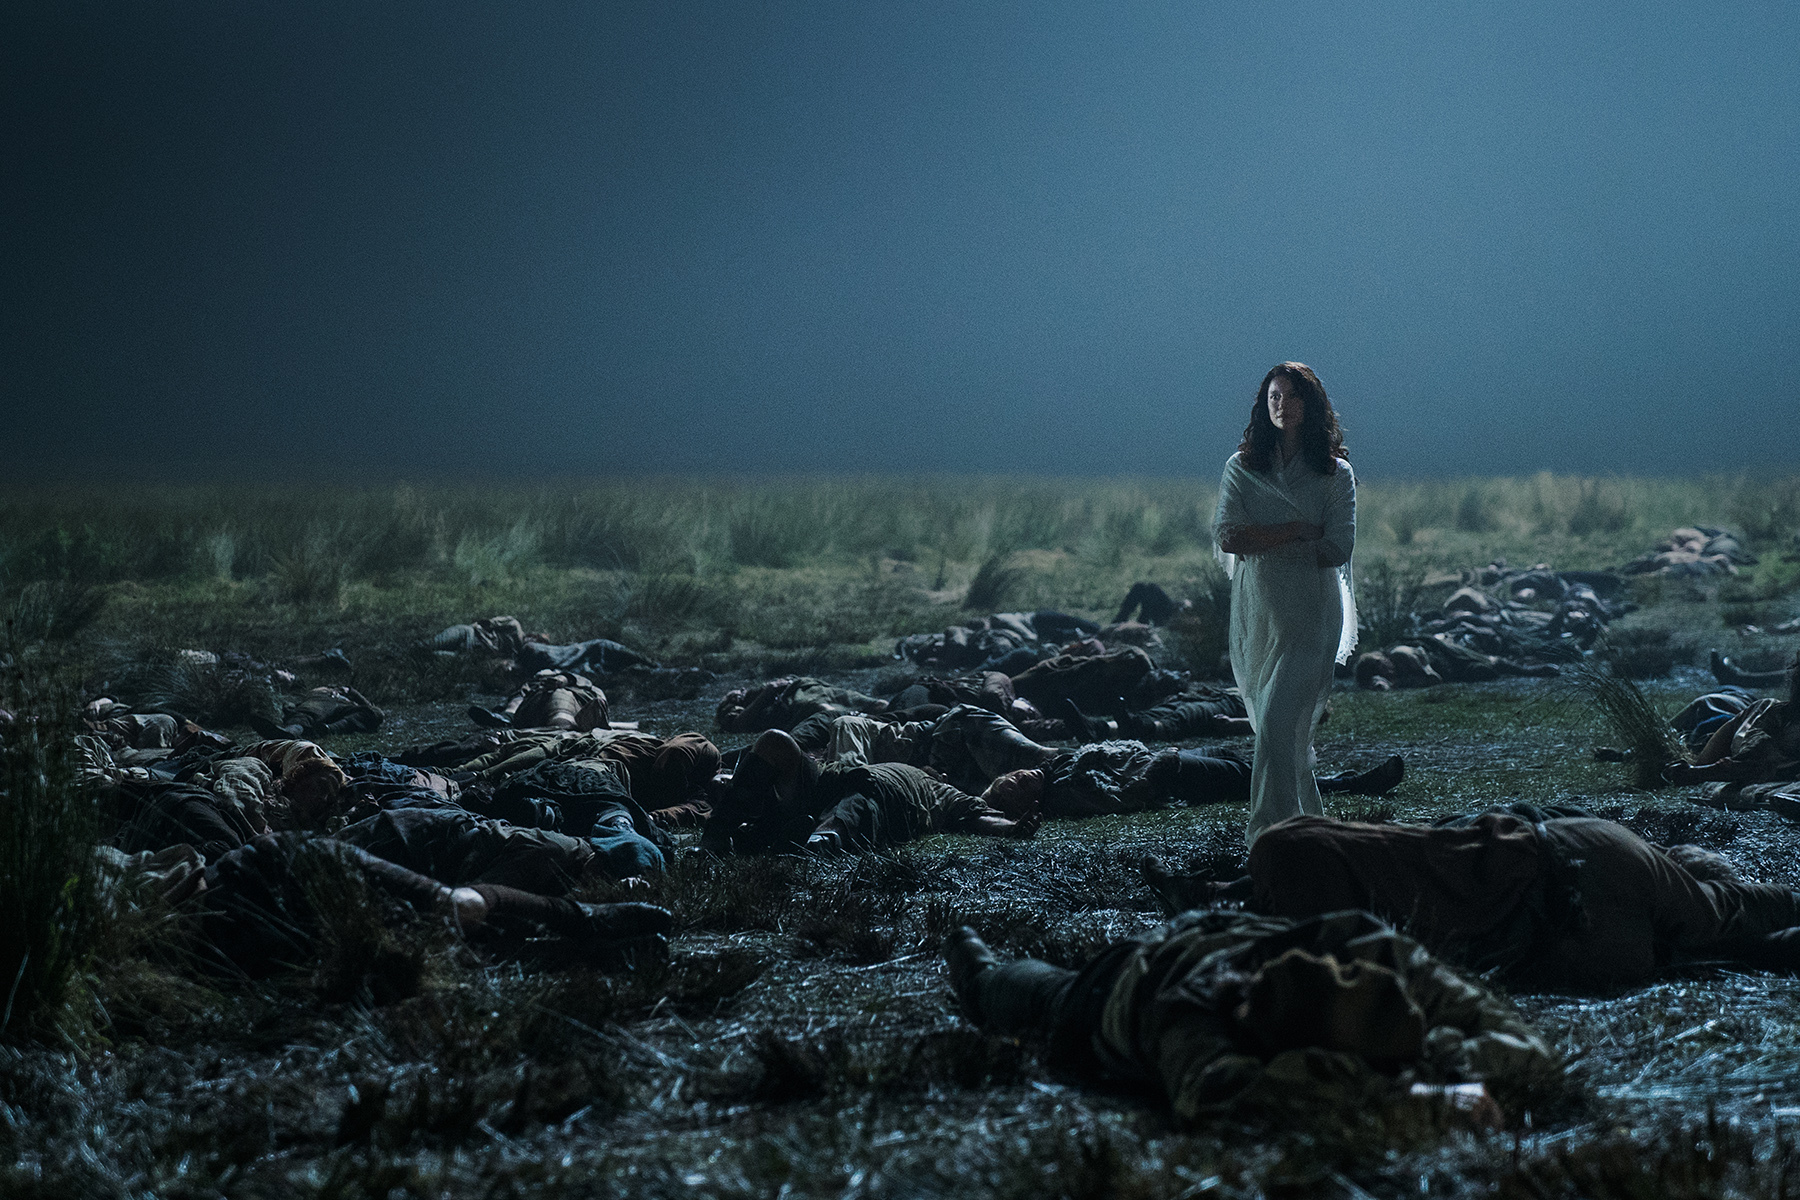 As Jamie clings to life on the moor, he imagines his wife, Claire Randall Fraser (Caitriona Balfe), coming toward him in the moonlight.